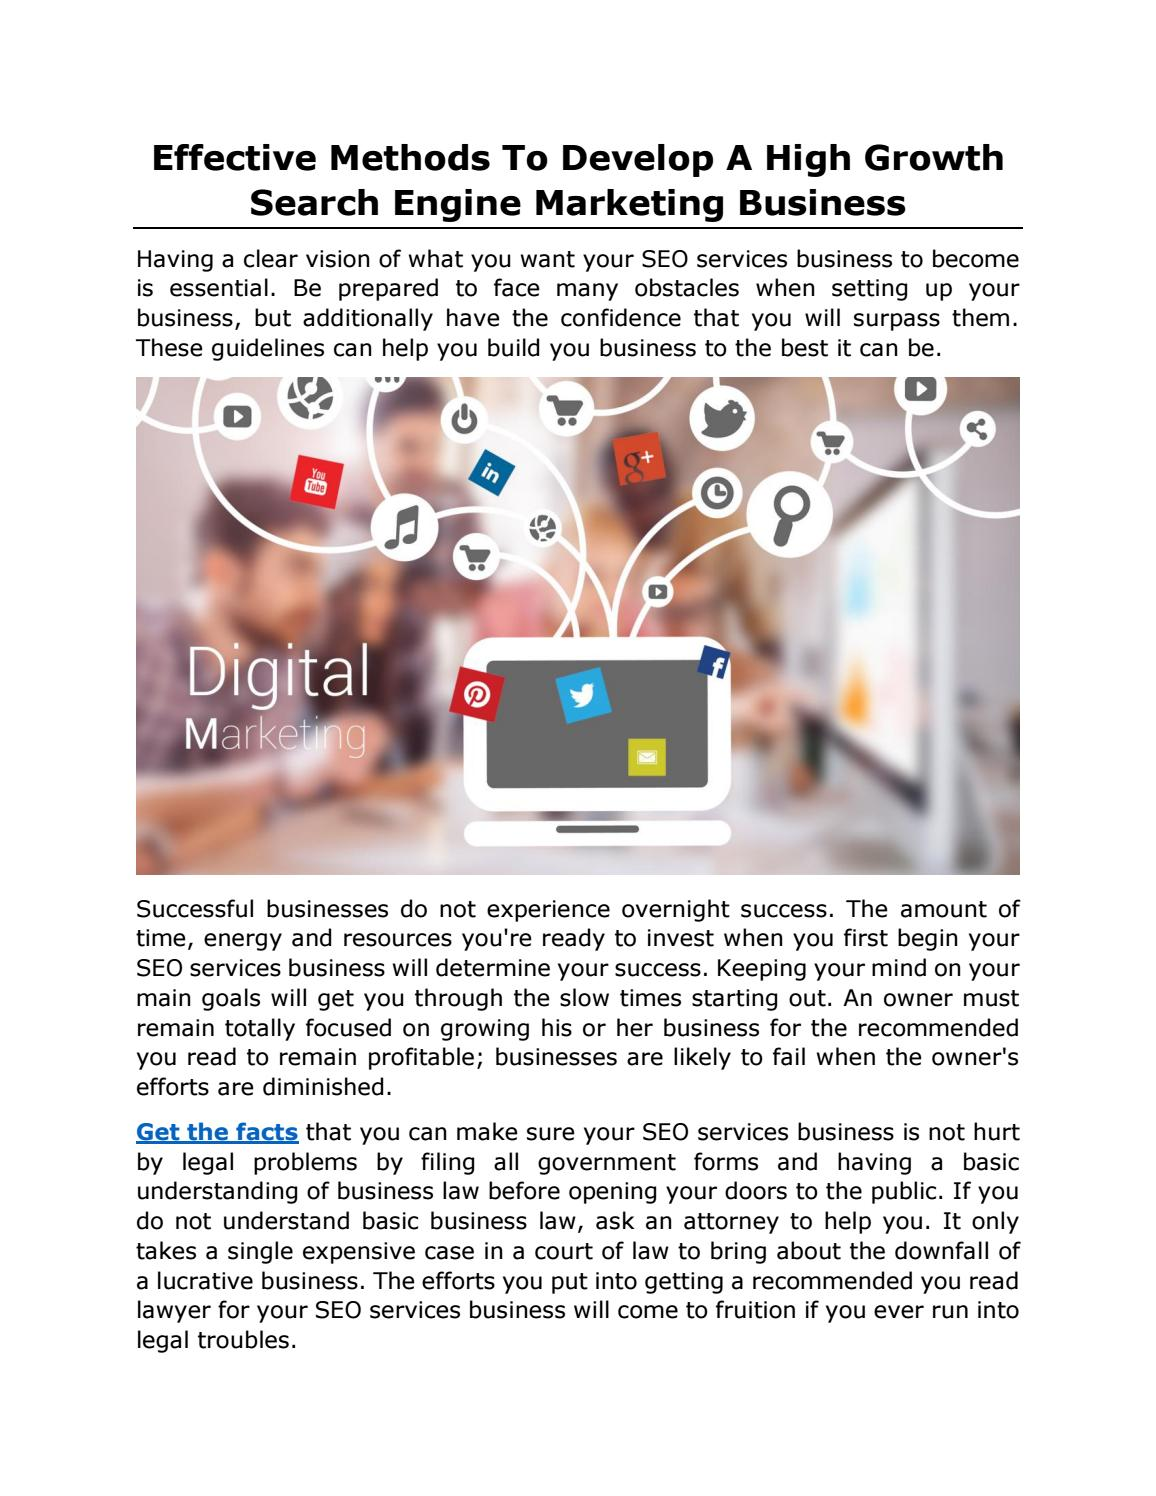 Effective Methods To Develop A High Growth Search Engine